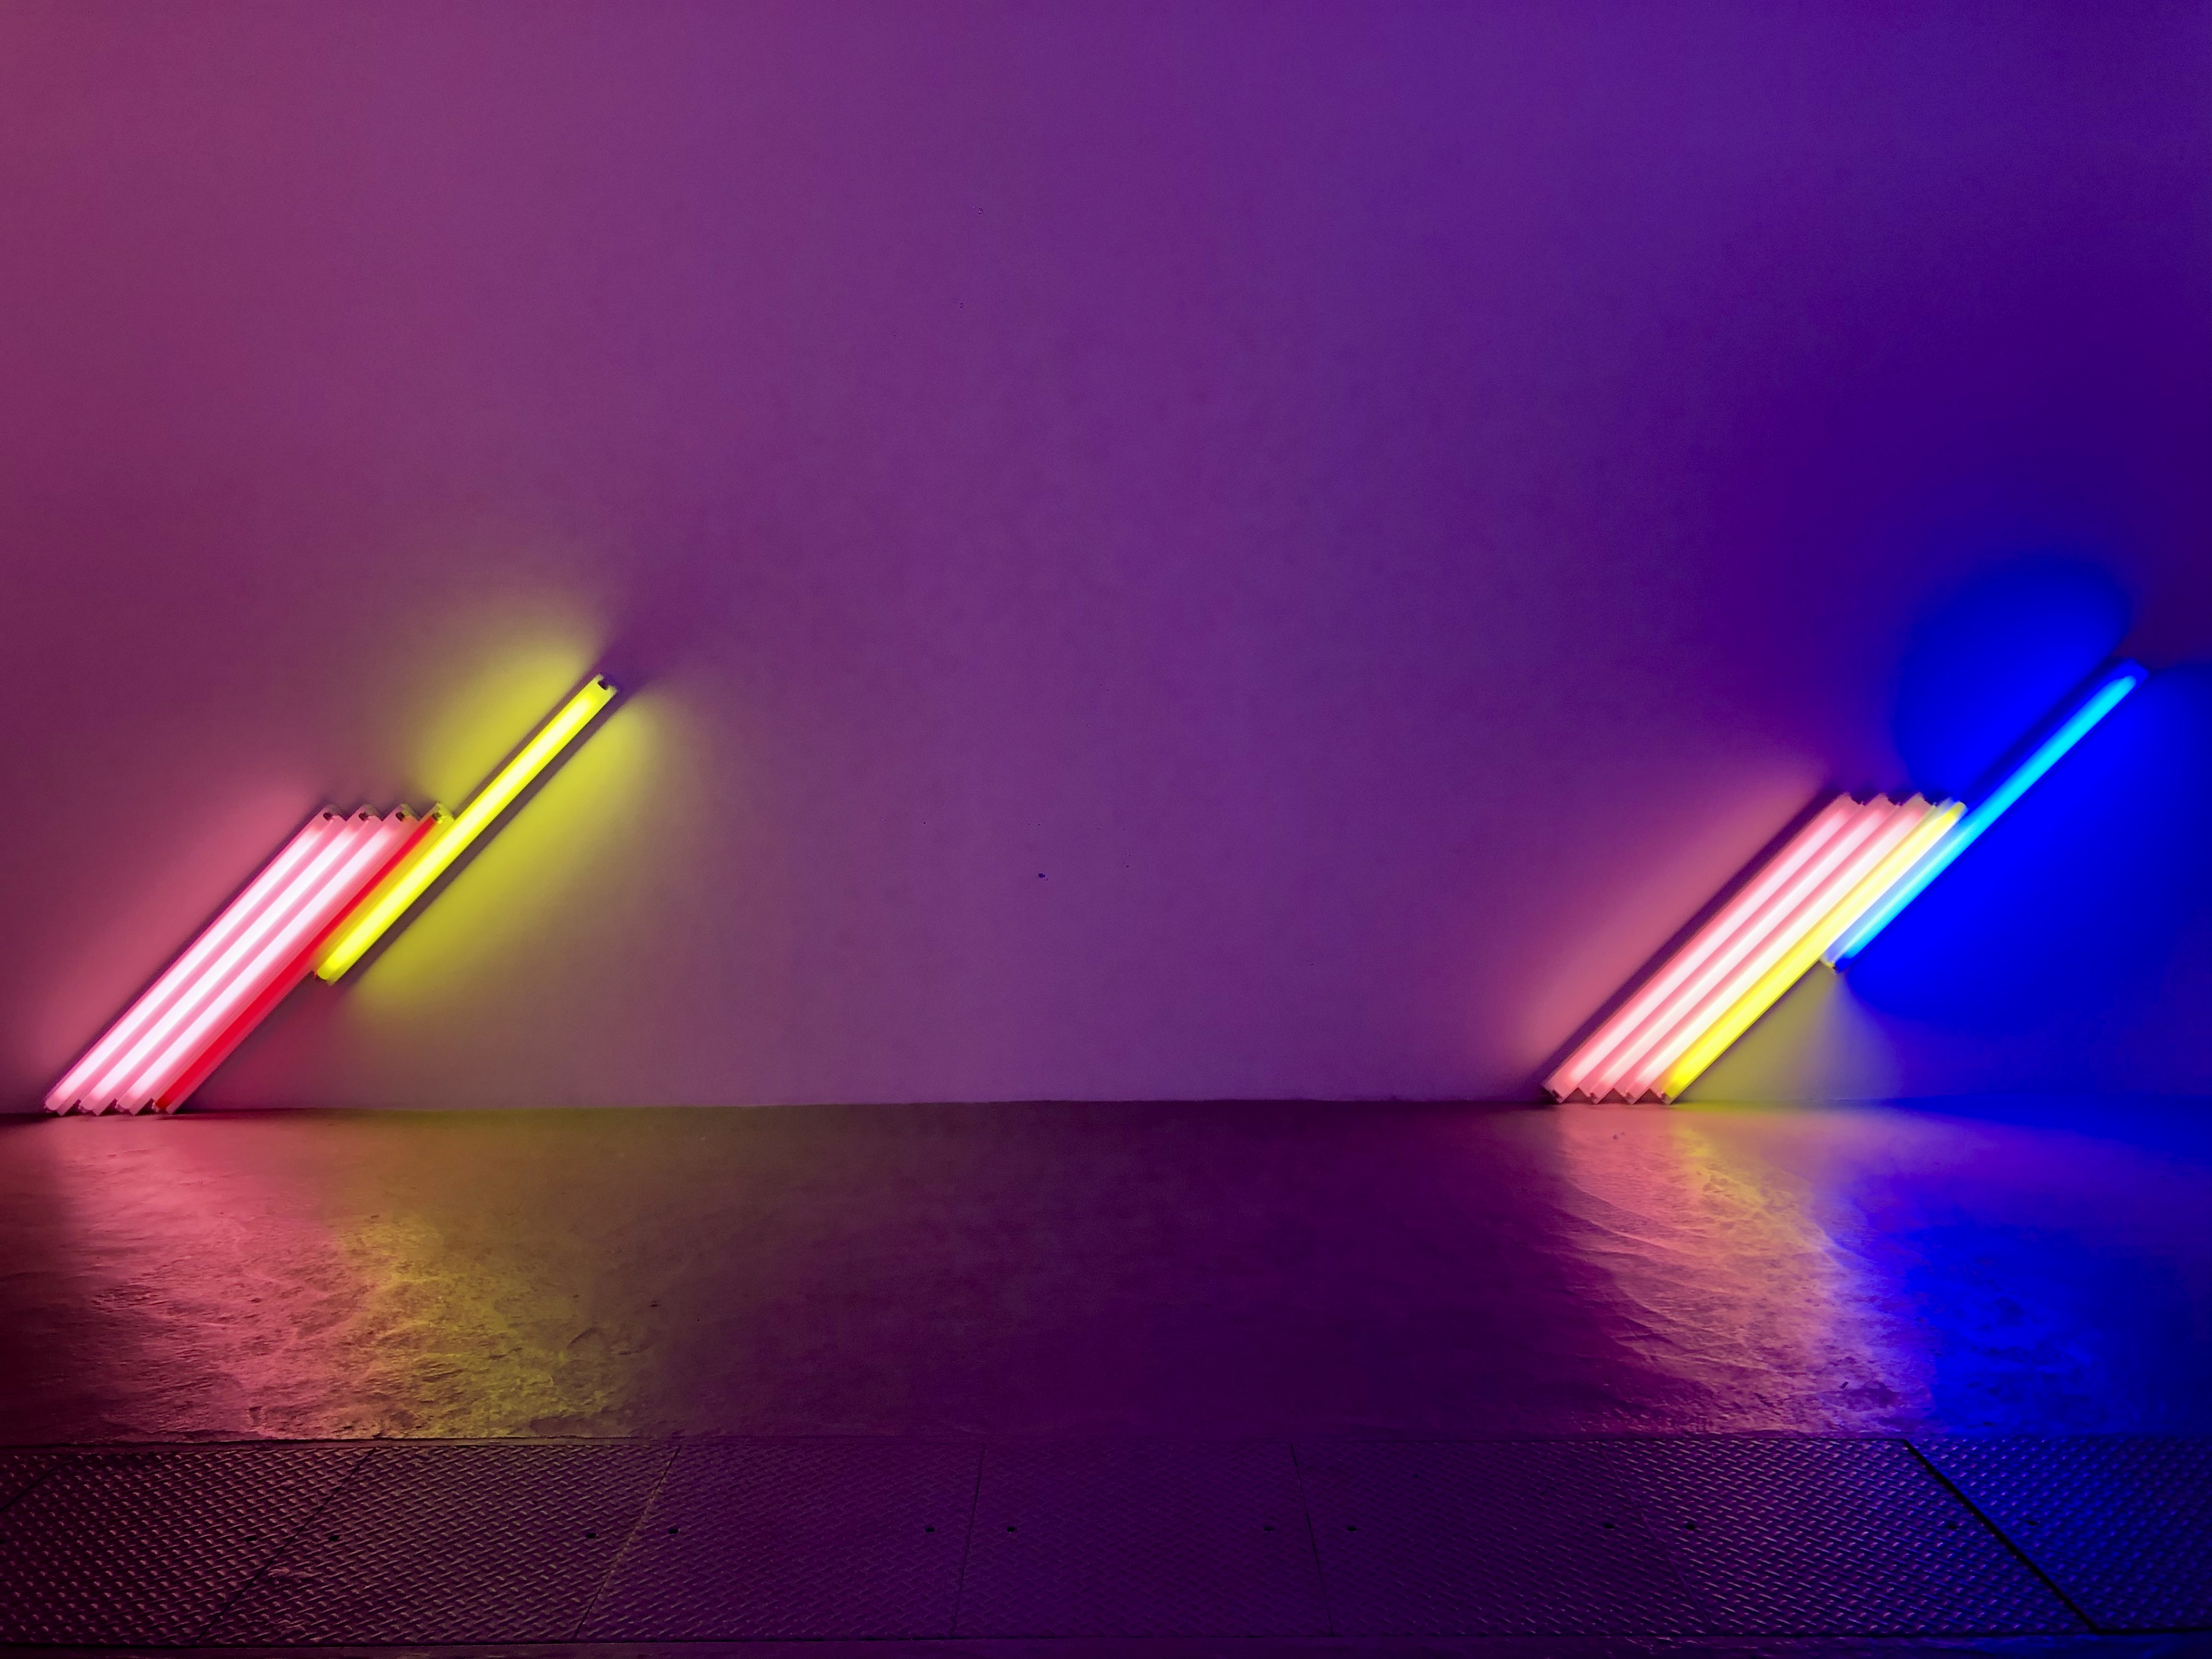 One of the first exhibits I went to for neon light artist, Dan Flavin.